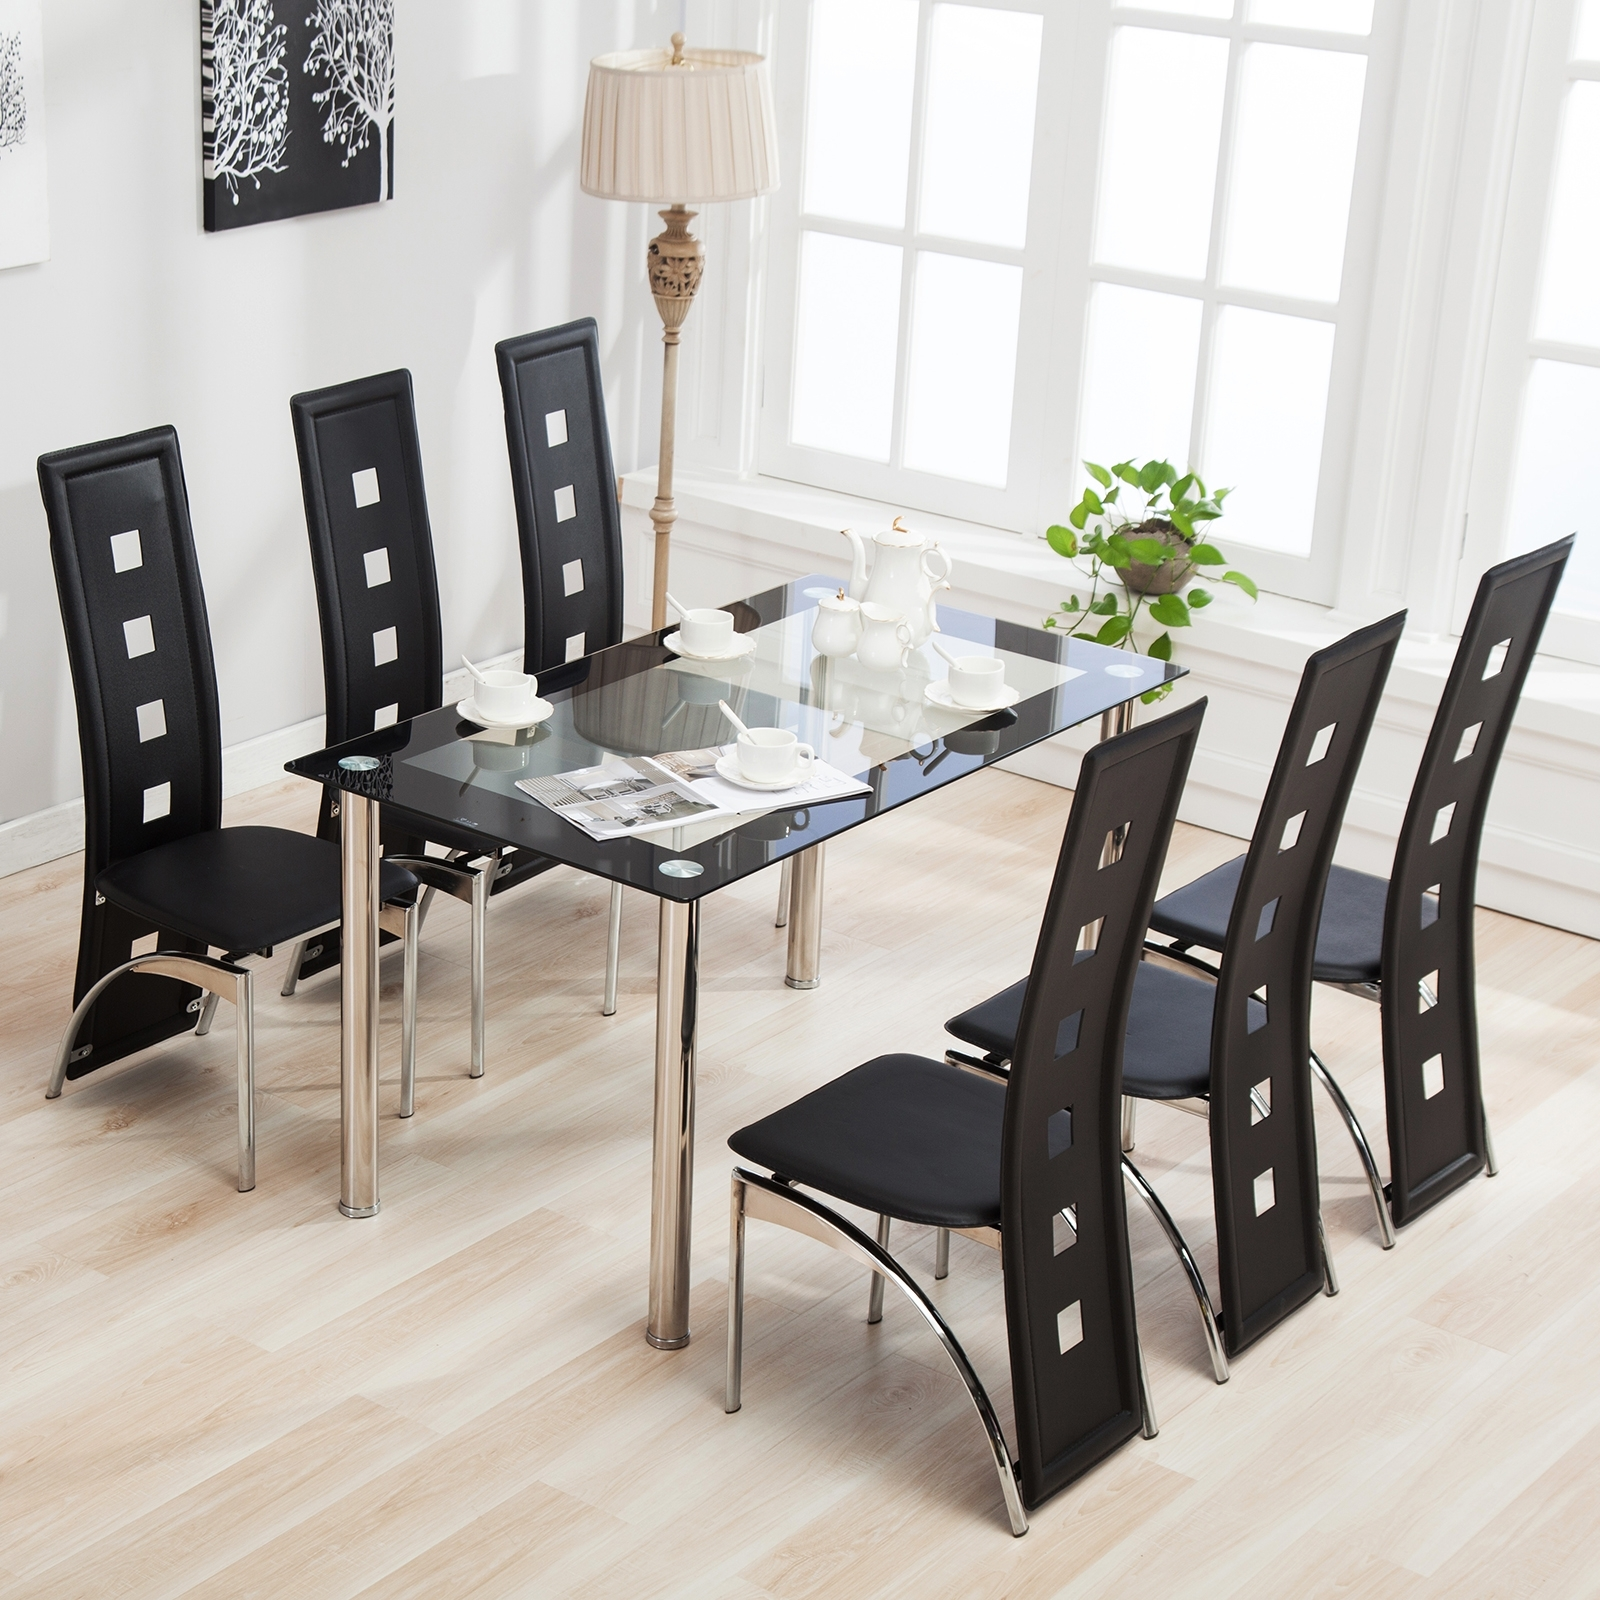 Latest 6 Chair Dining Table Sets Pertaining To Mecor 7Pcs Dining Table Set 6 Chairs Glass Metal Kitchen Room (View 22 of 25)